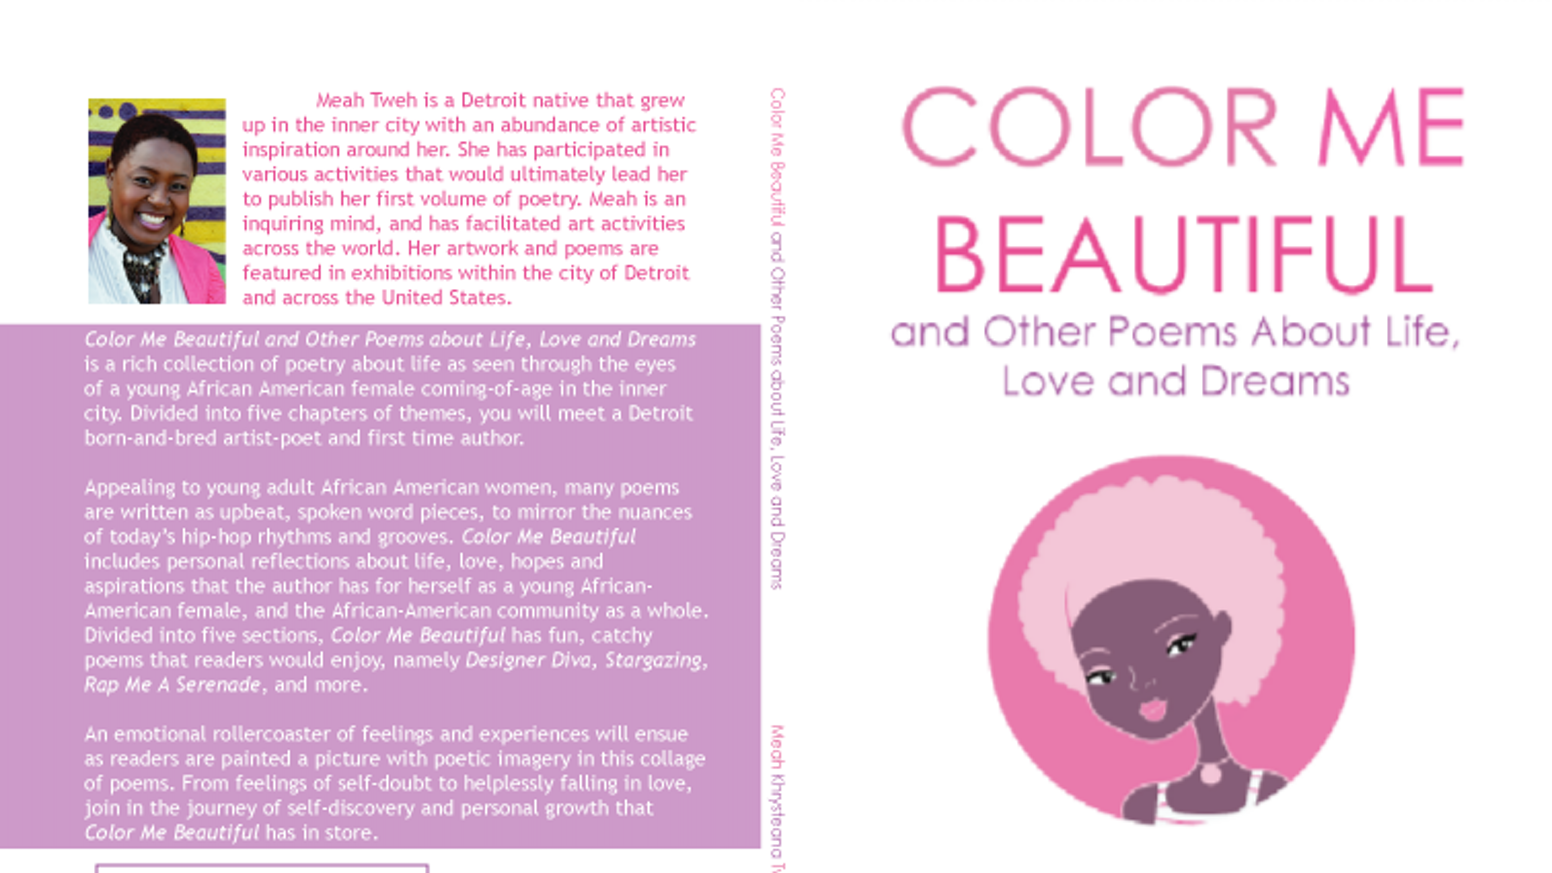 Color Me Beautiful Poetry Book Release Party & Afterglow by Meah